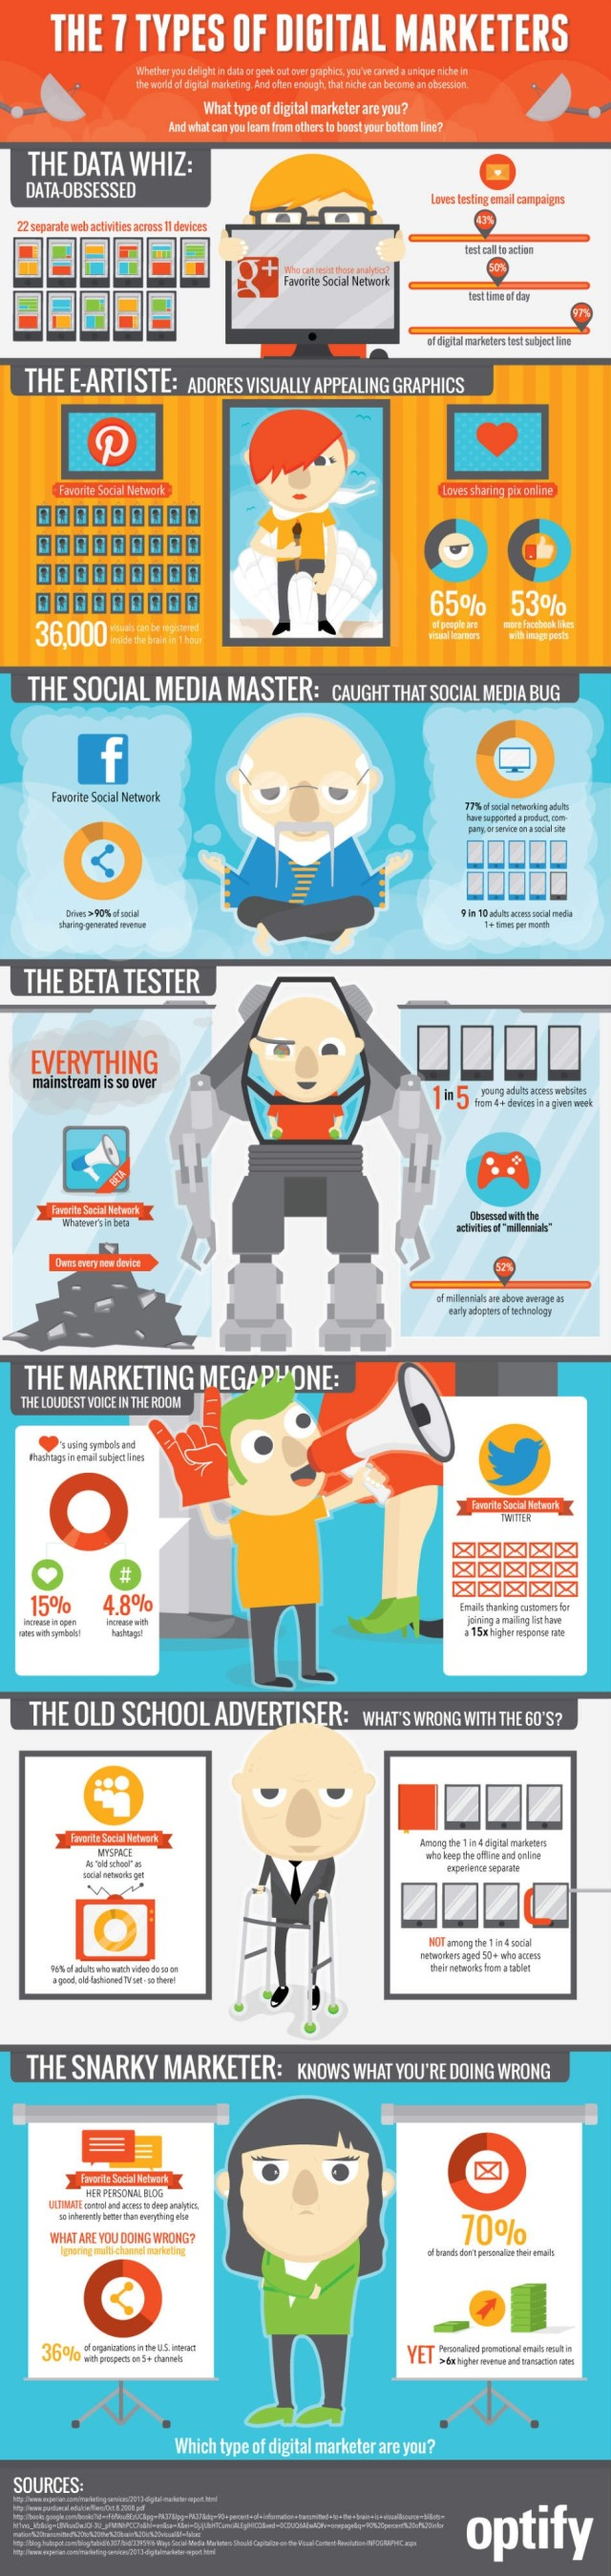 7-types-digital-marketers